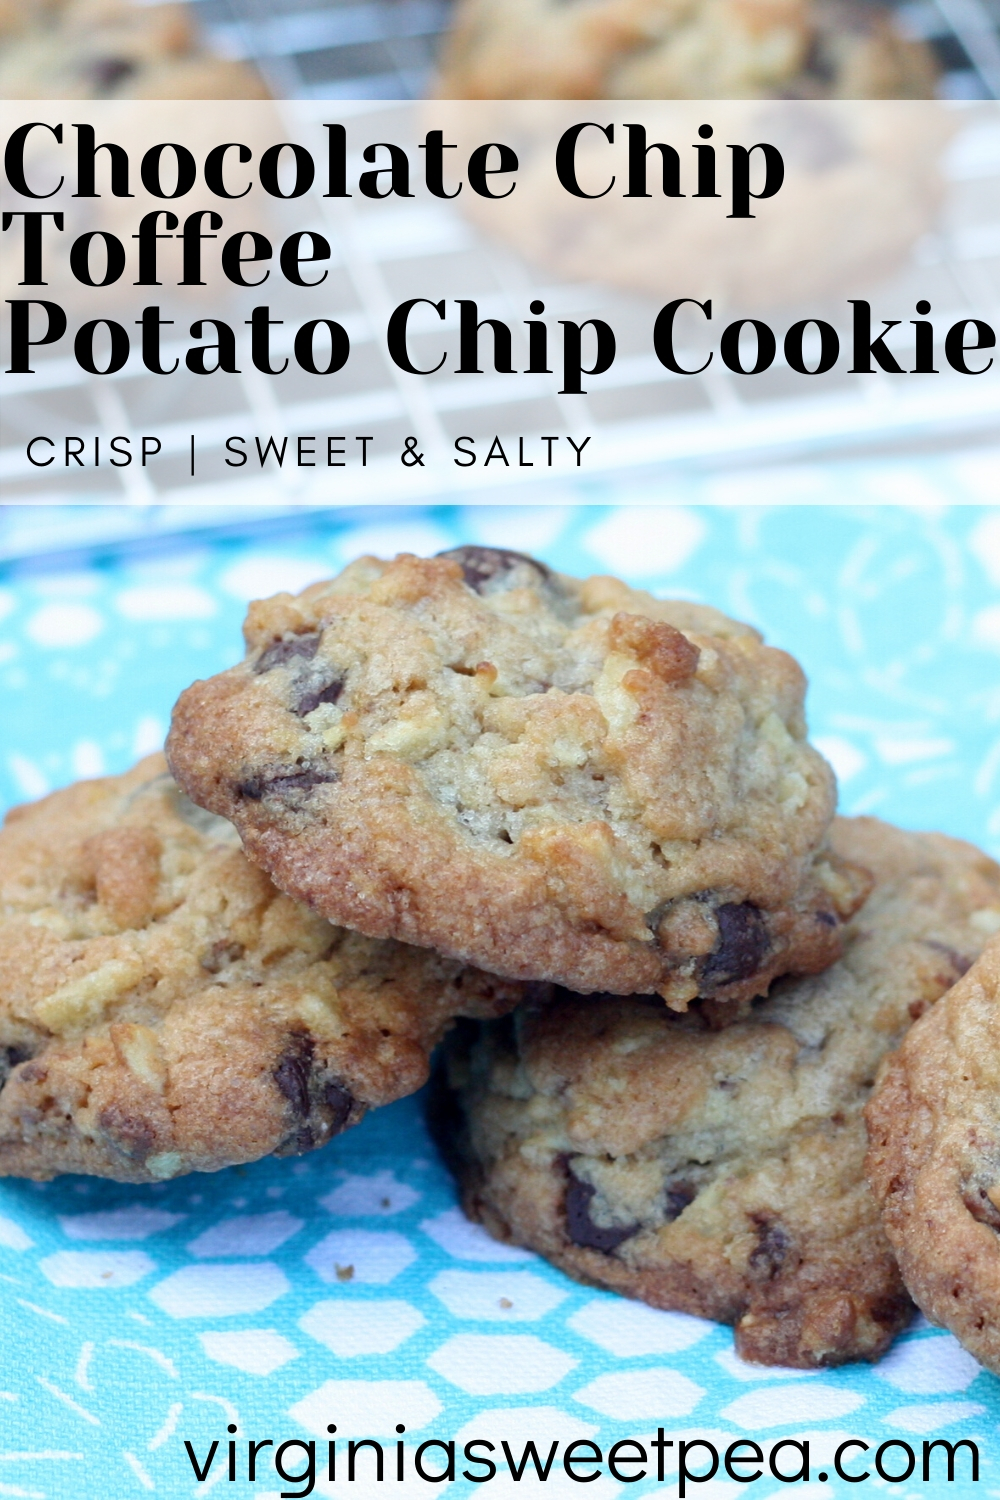 Chocolate Chip & Toffee Potato Chip Cookies - Salty combined with sweet makes this a winning cookie recipe.  #cookie #cookierecipe #toffee #chocolatechips #potatochipcookie via @spaula